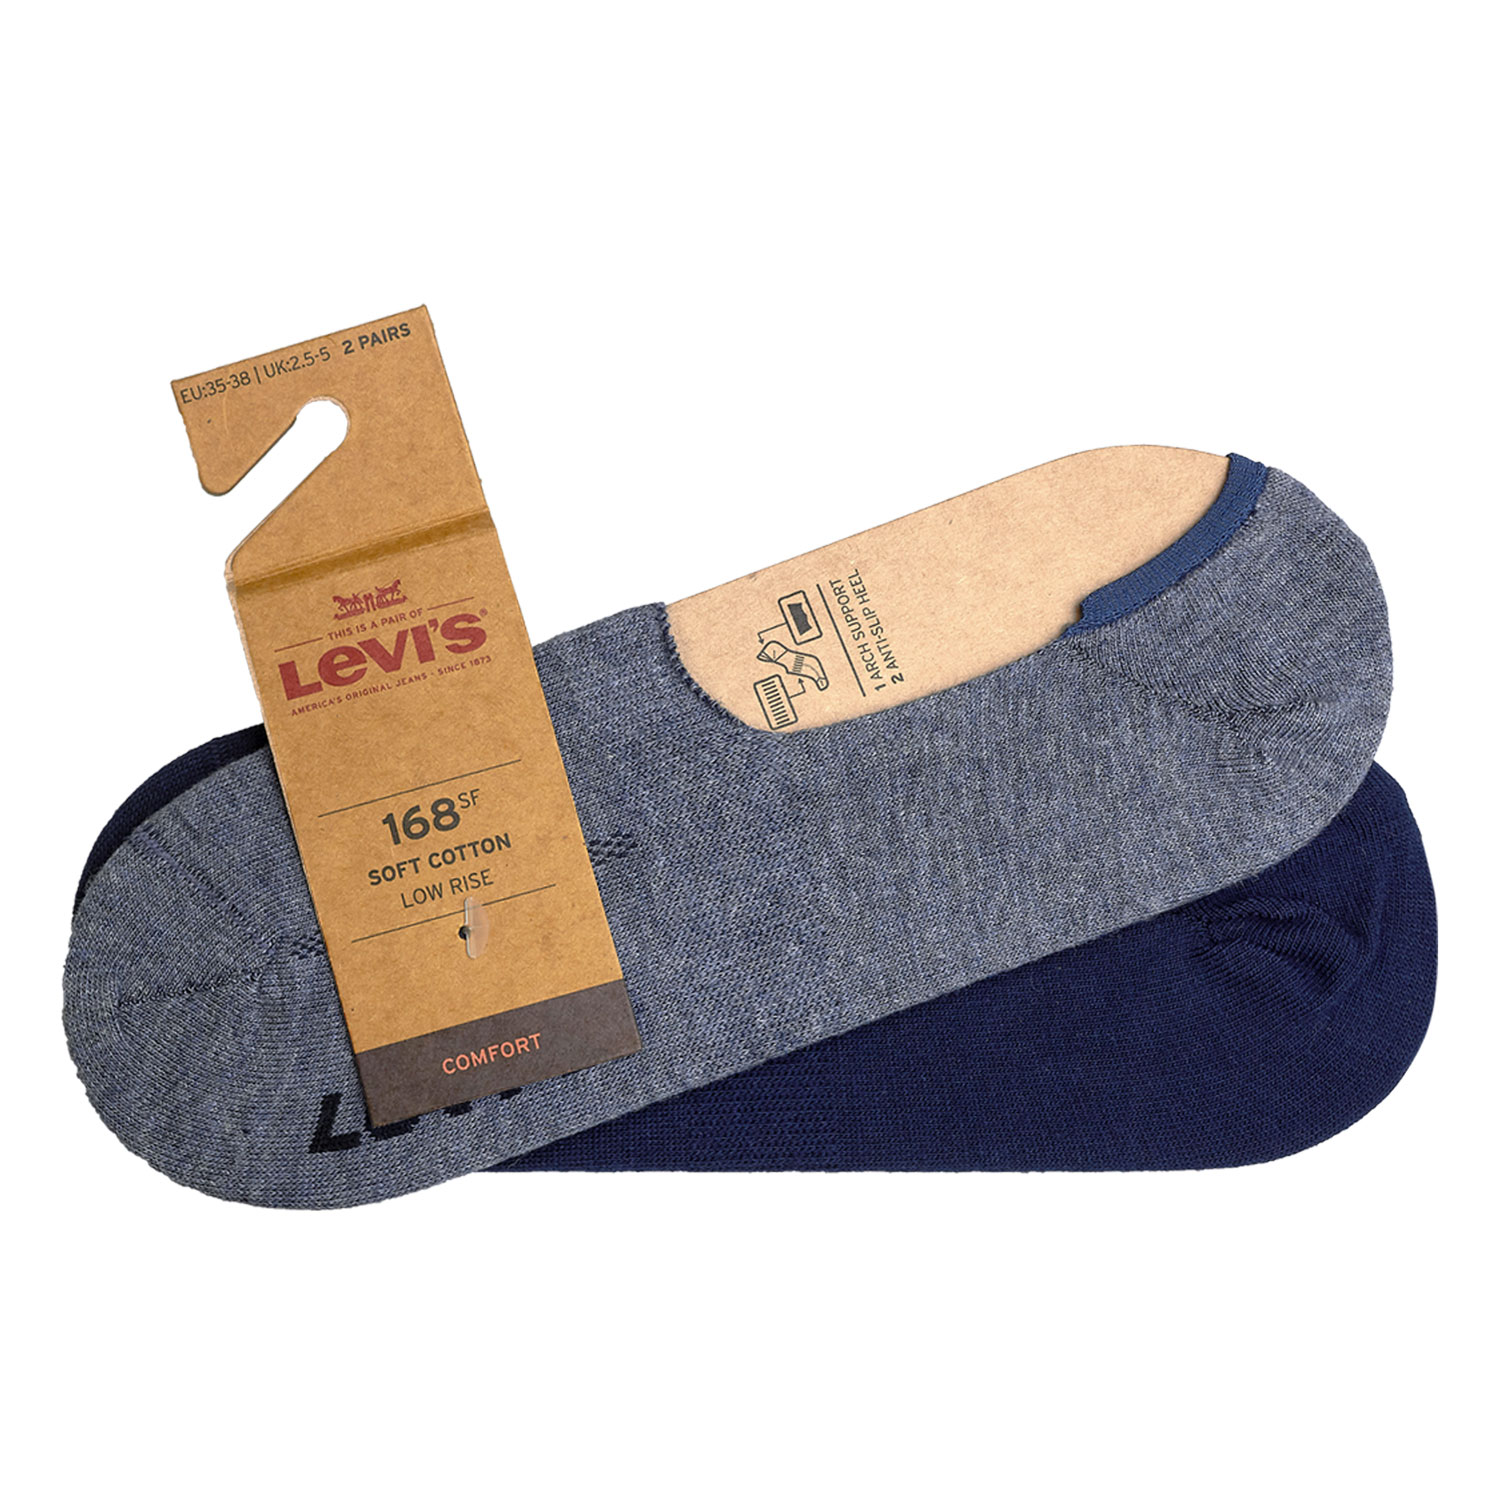 Levi's Füßlinge 8 Paar Low Rise Soft Cotton 943001001 Sneaker Footies Levis – Bild 7